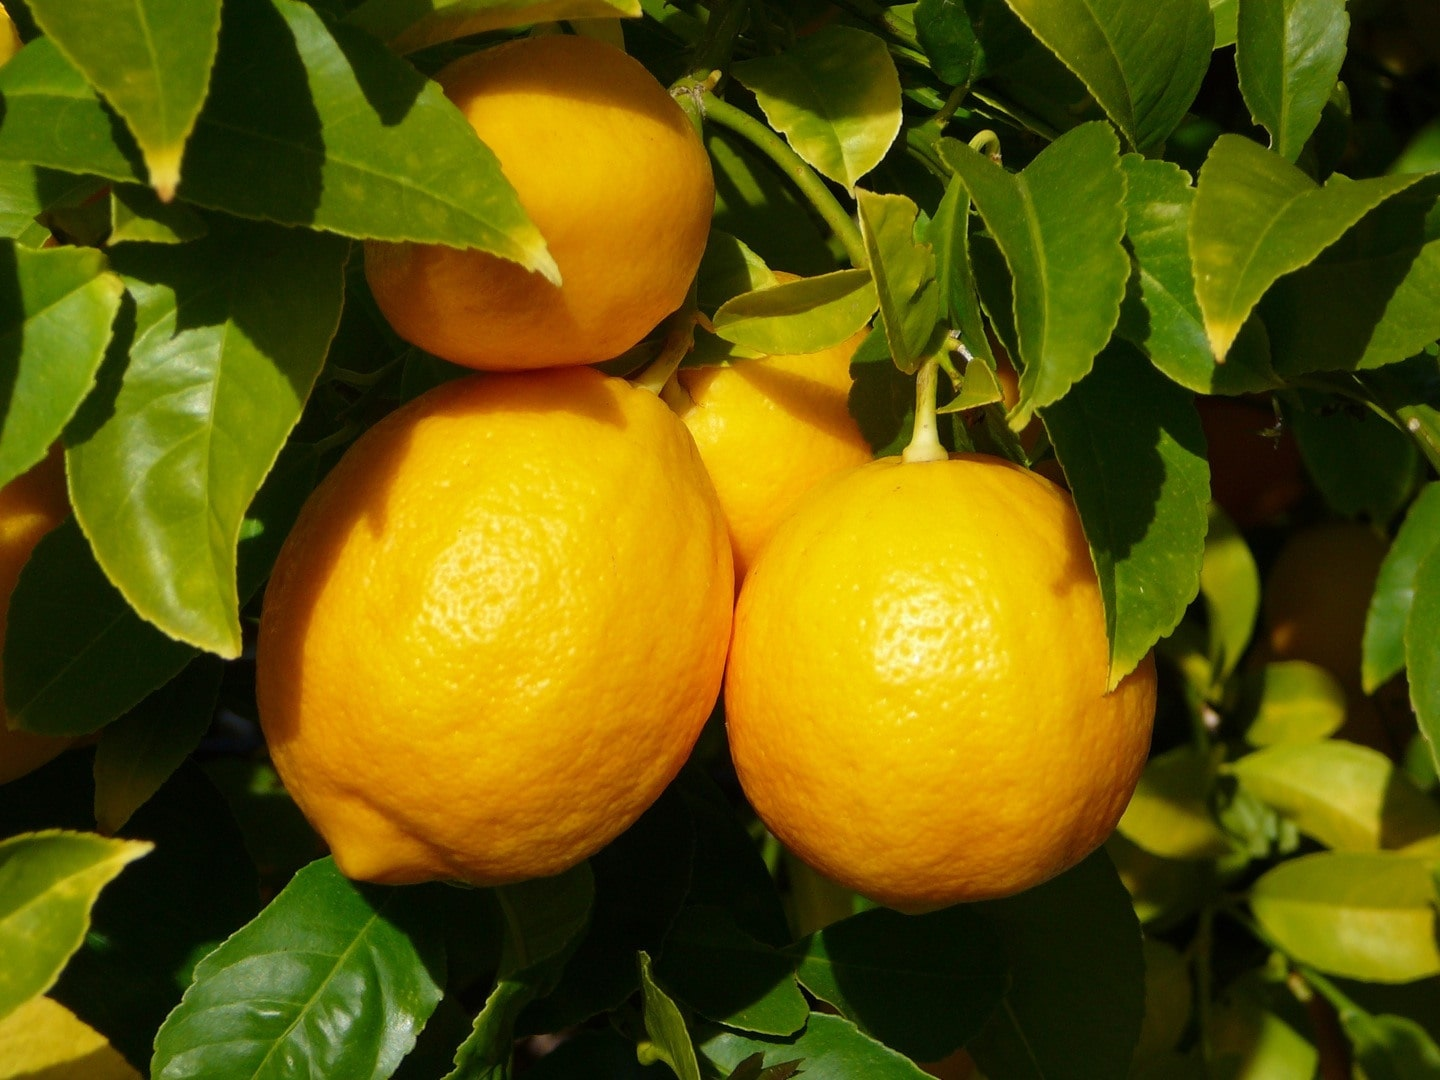 Citron jaune, yellow lemon